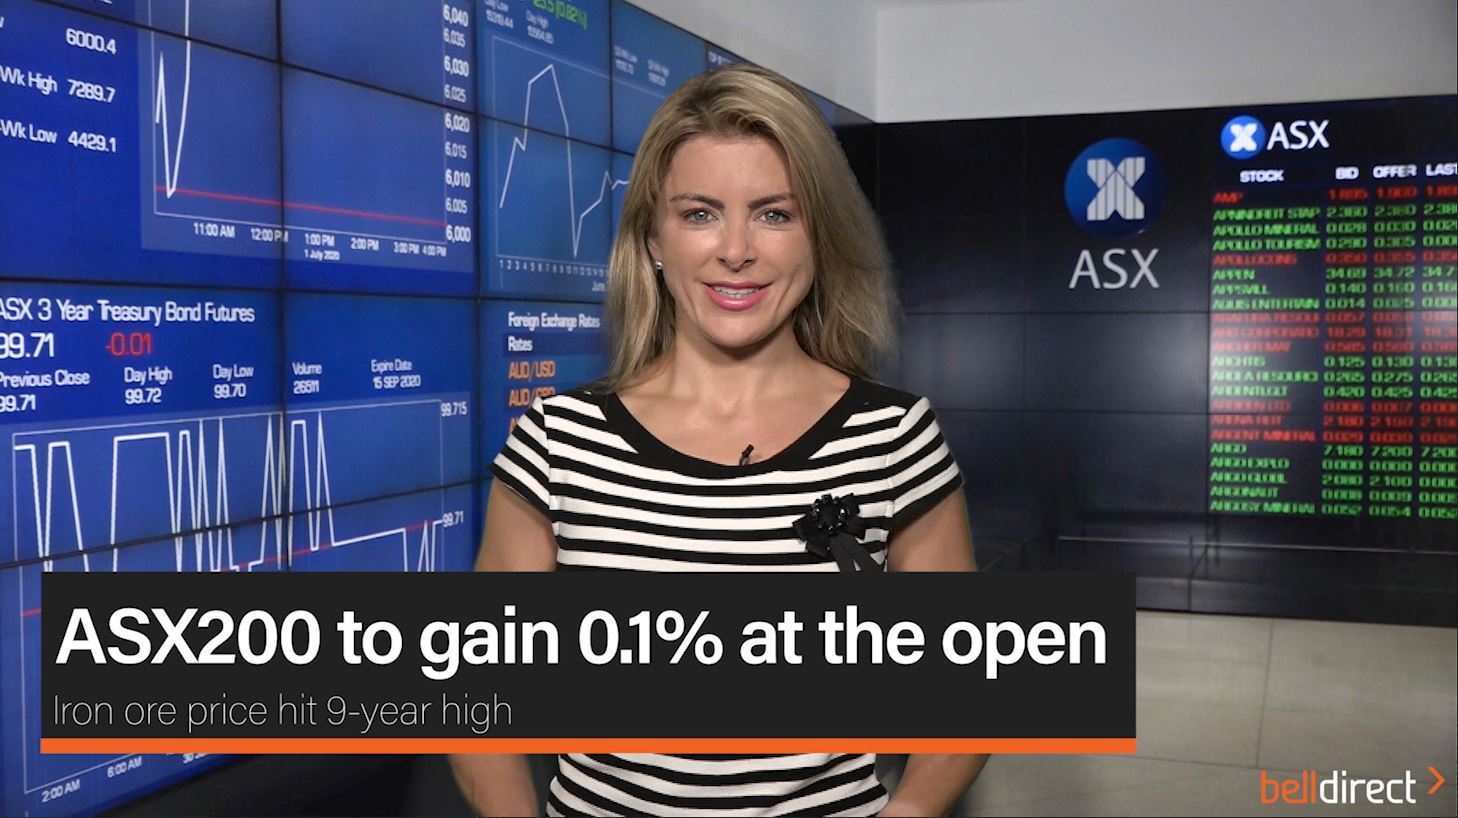 ASX200 to gain 0.1% at the open